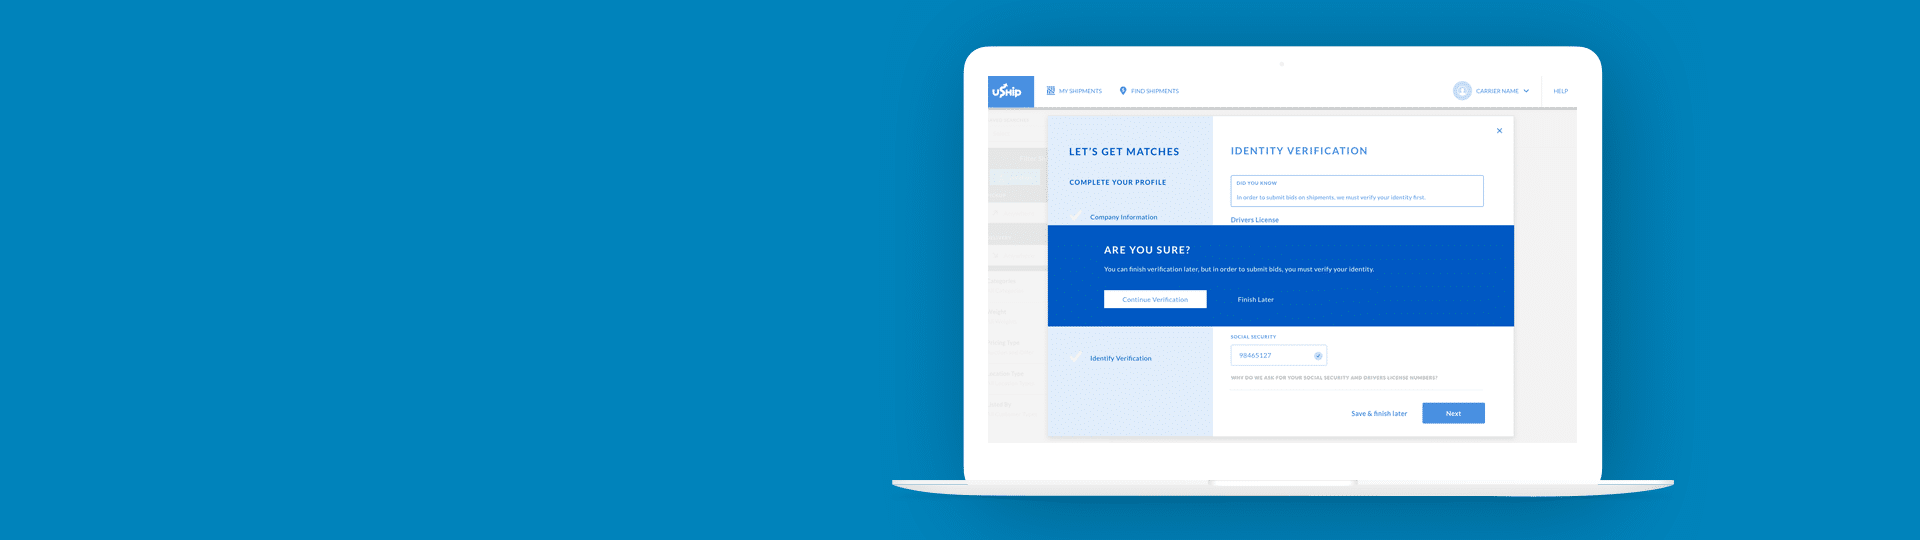 uShip On-boarding Redesign